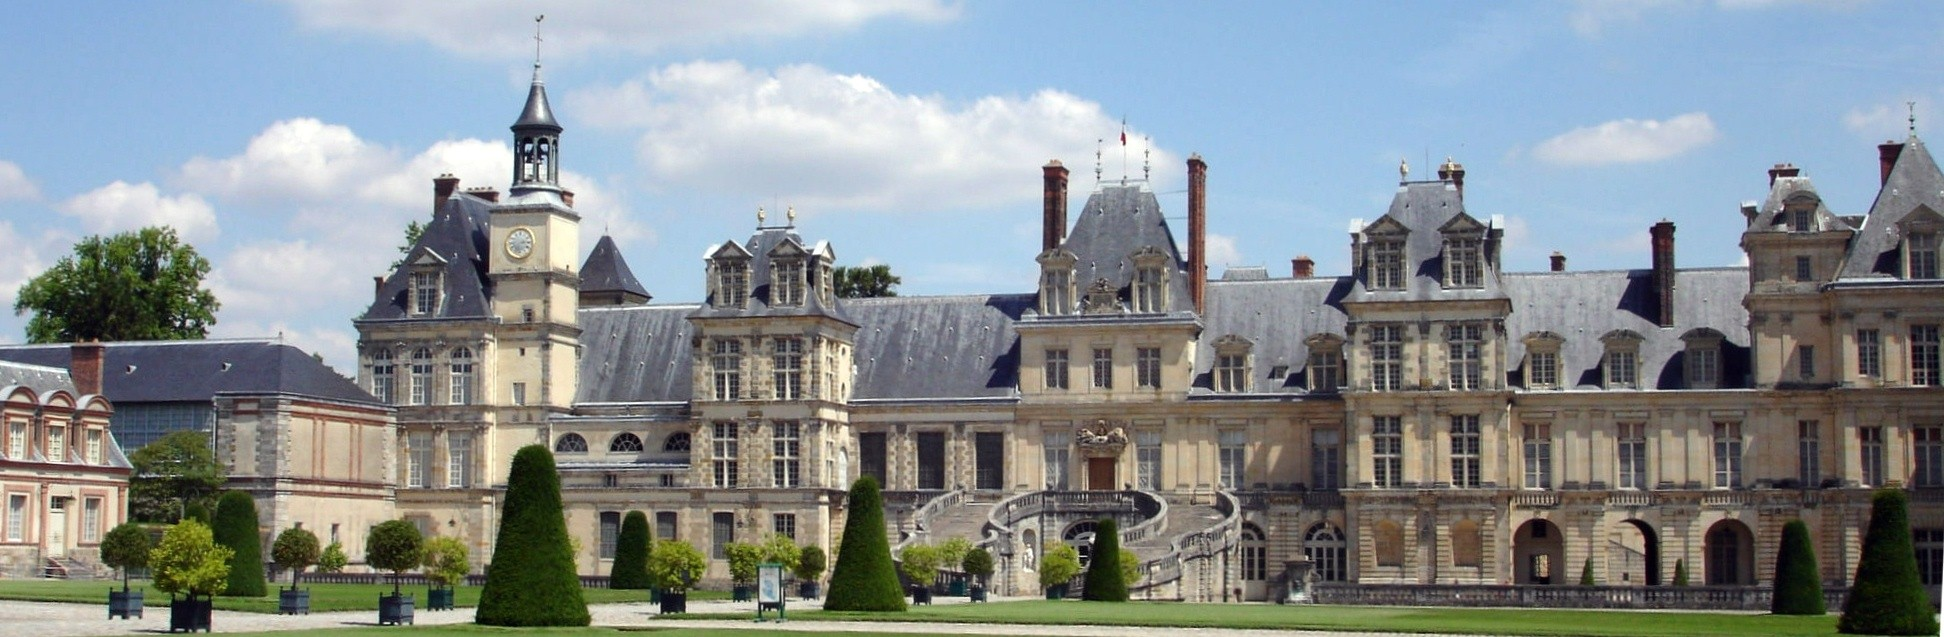 S.N.S.A. FONTAINEBLEAU